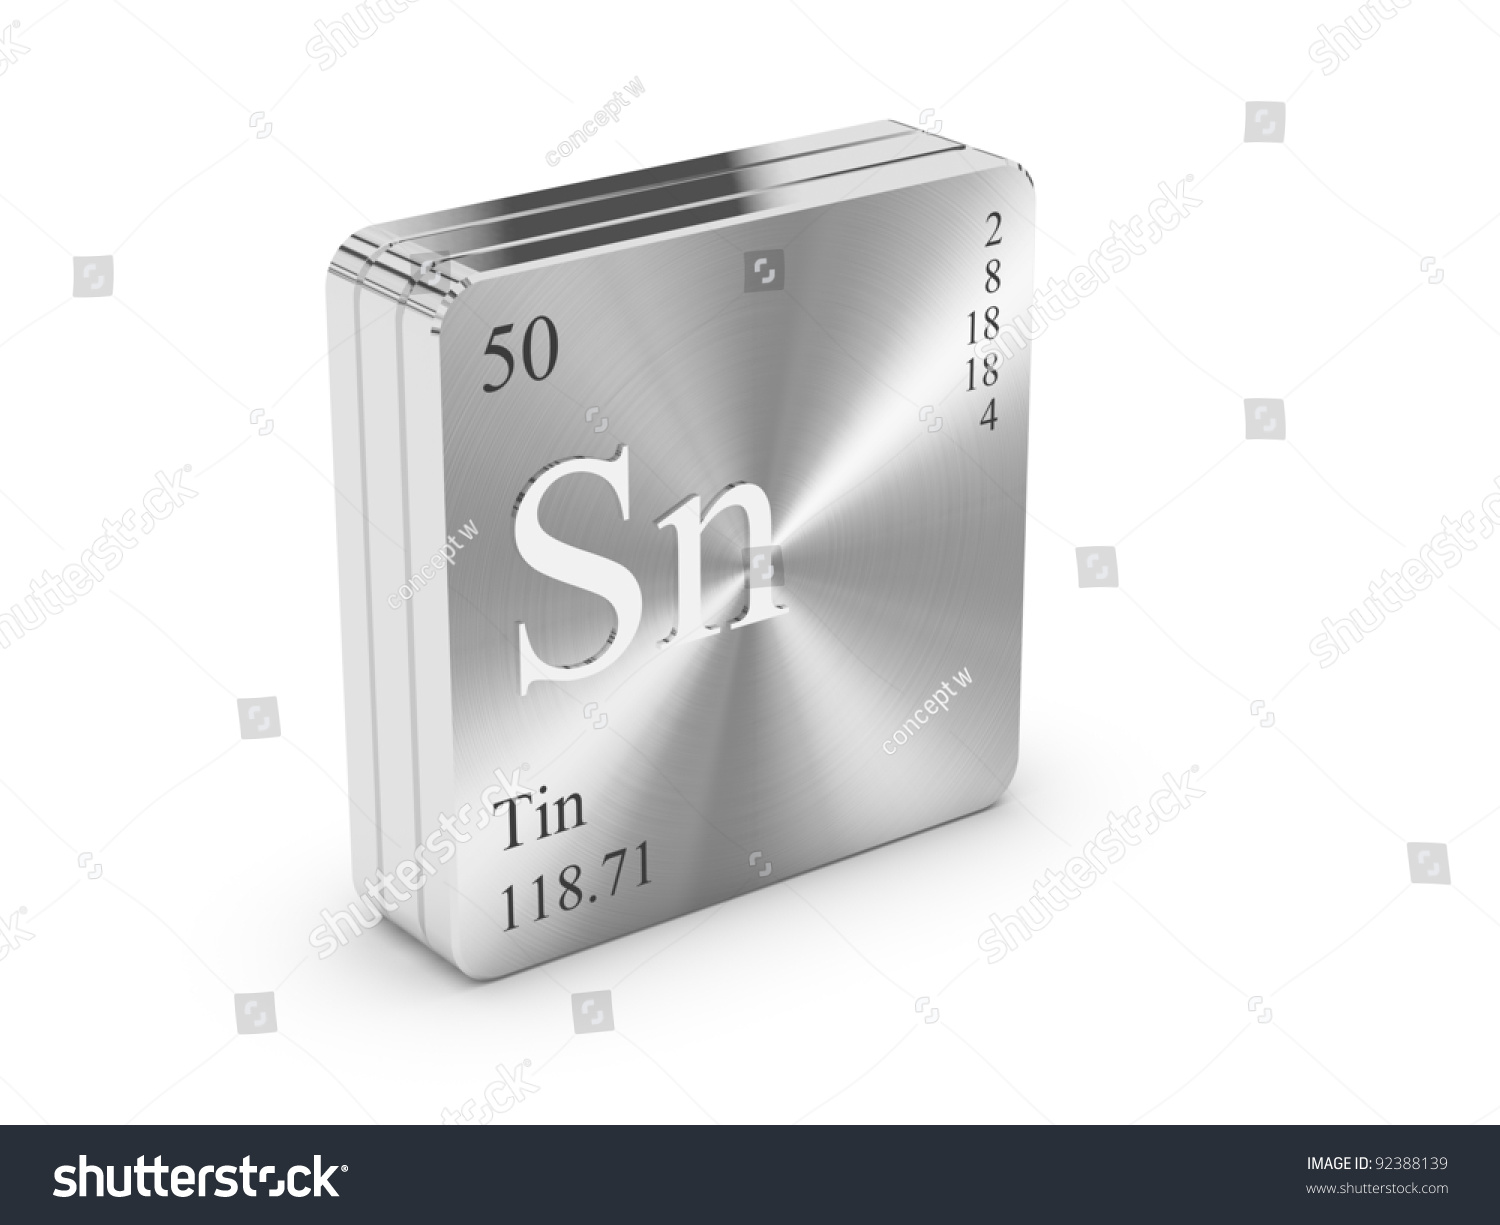 Symbol of tin in the periodic table image collections periodic tin element periodic table on metal stock illustration 92388139 tin element of the periodic table on gamestrikefo Gallery